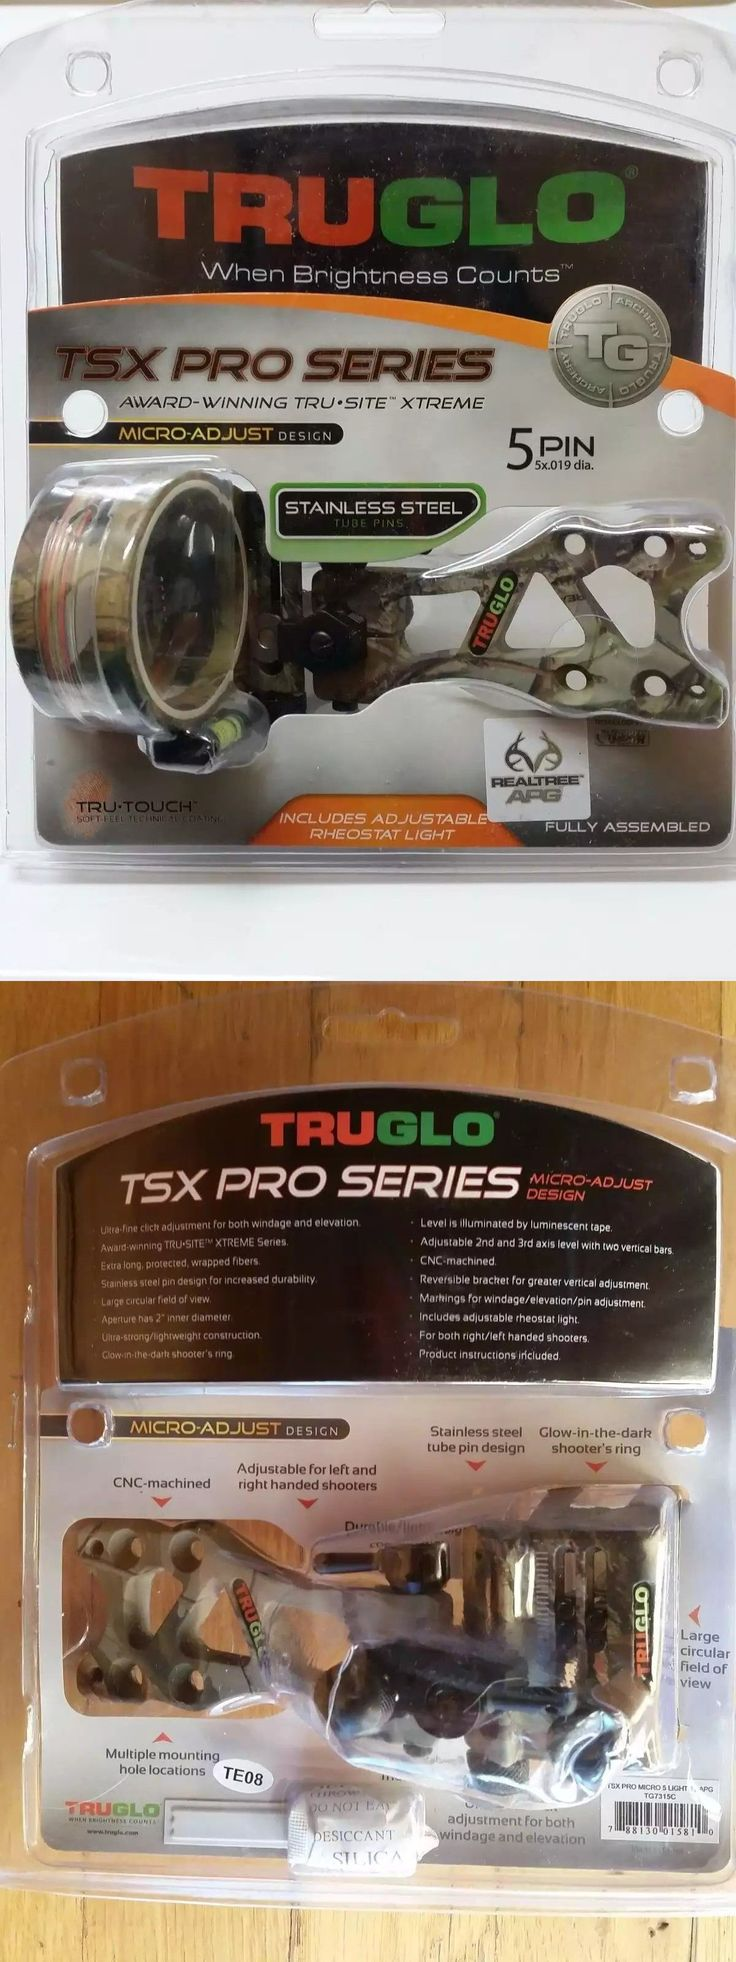 Sights 20845: Truglo Tsx Pro Serie 5-Pin Sight Micro Rt Apg Archery Compound Bow Accessories -> BUY IT NOW ONLY: $37.95 on eBay!